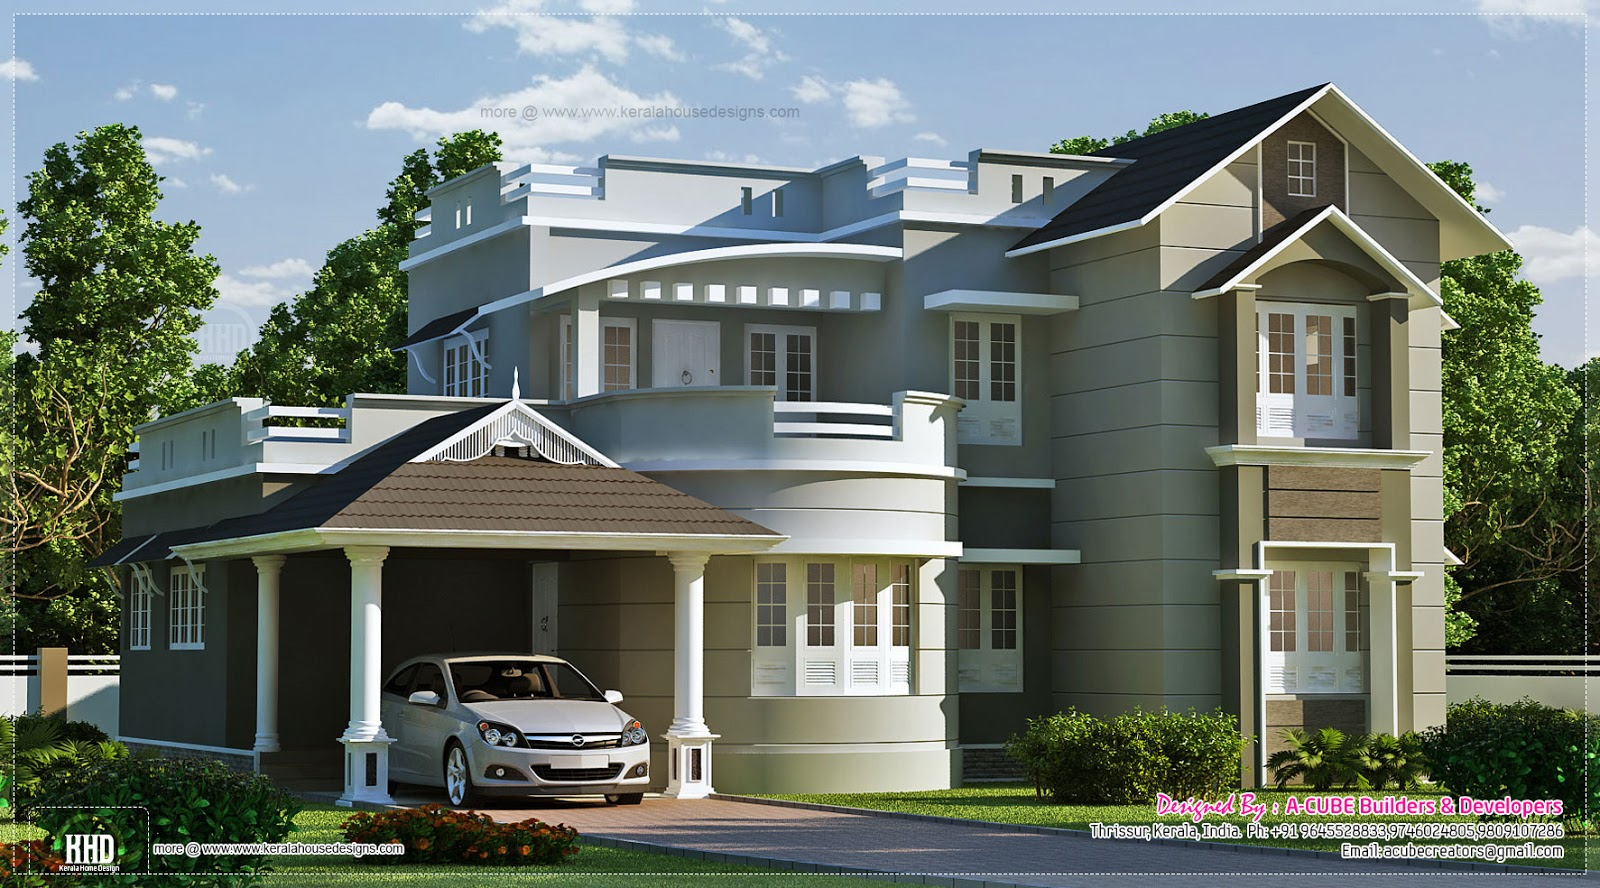 New style home exterior in 1800 kerala home for Homes plus designers builders inc